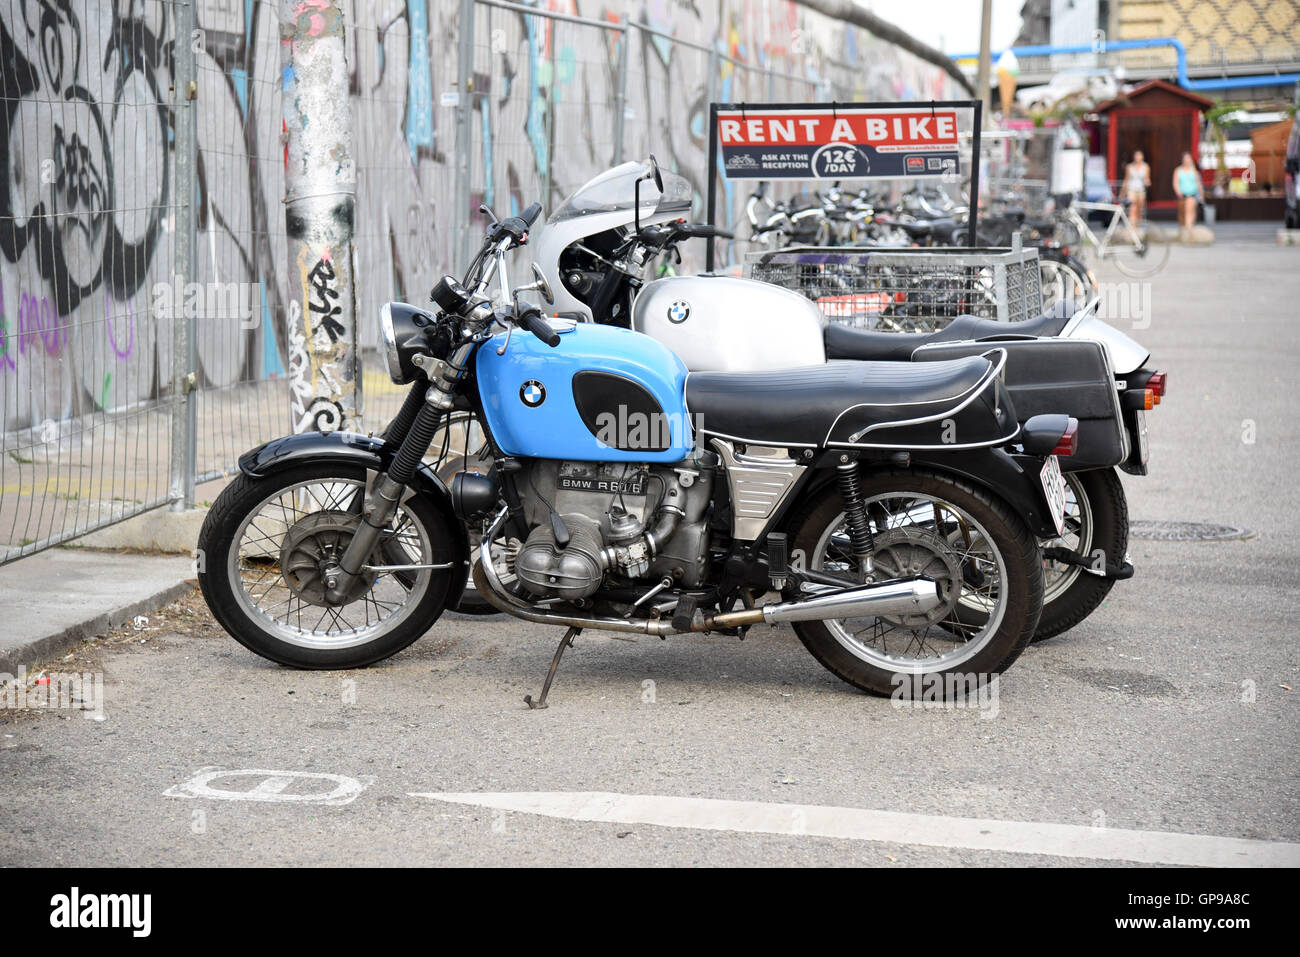 old bmw motorbike stockfotos old bmw motorbike bilder alamy. Black Bedroom Furniture Sets. Home Design Ideas